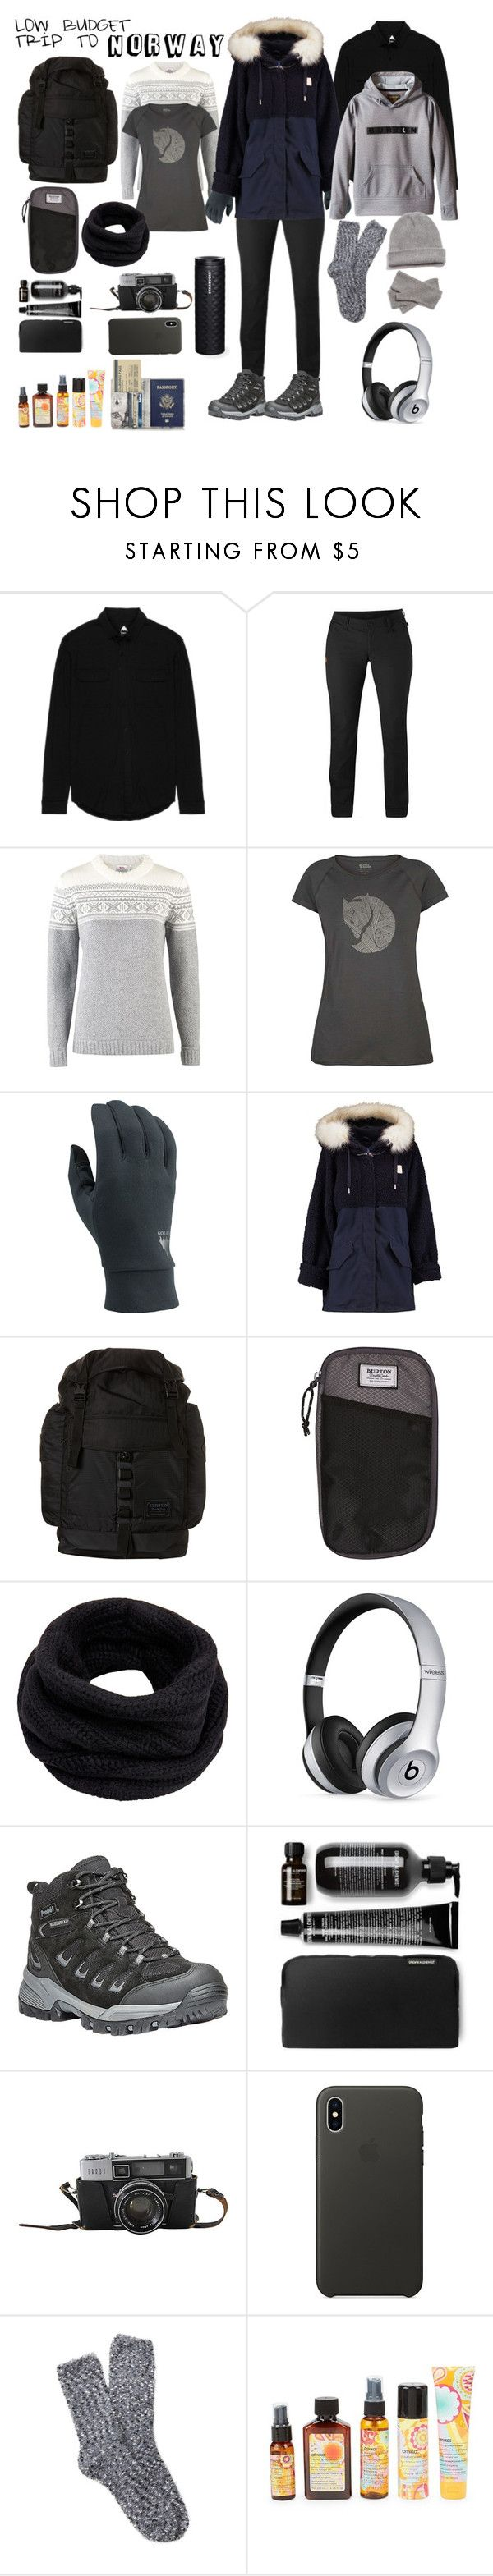 """""""low budget NORWAY"""" by deadbeat-horn on Polyvore featuring Burton, Fjällräven, adidas Originals, Helmut Lang, Beats by Dr. Dre, Propét, Apple, Free Press and amika"""